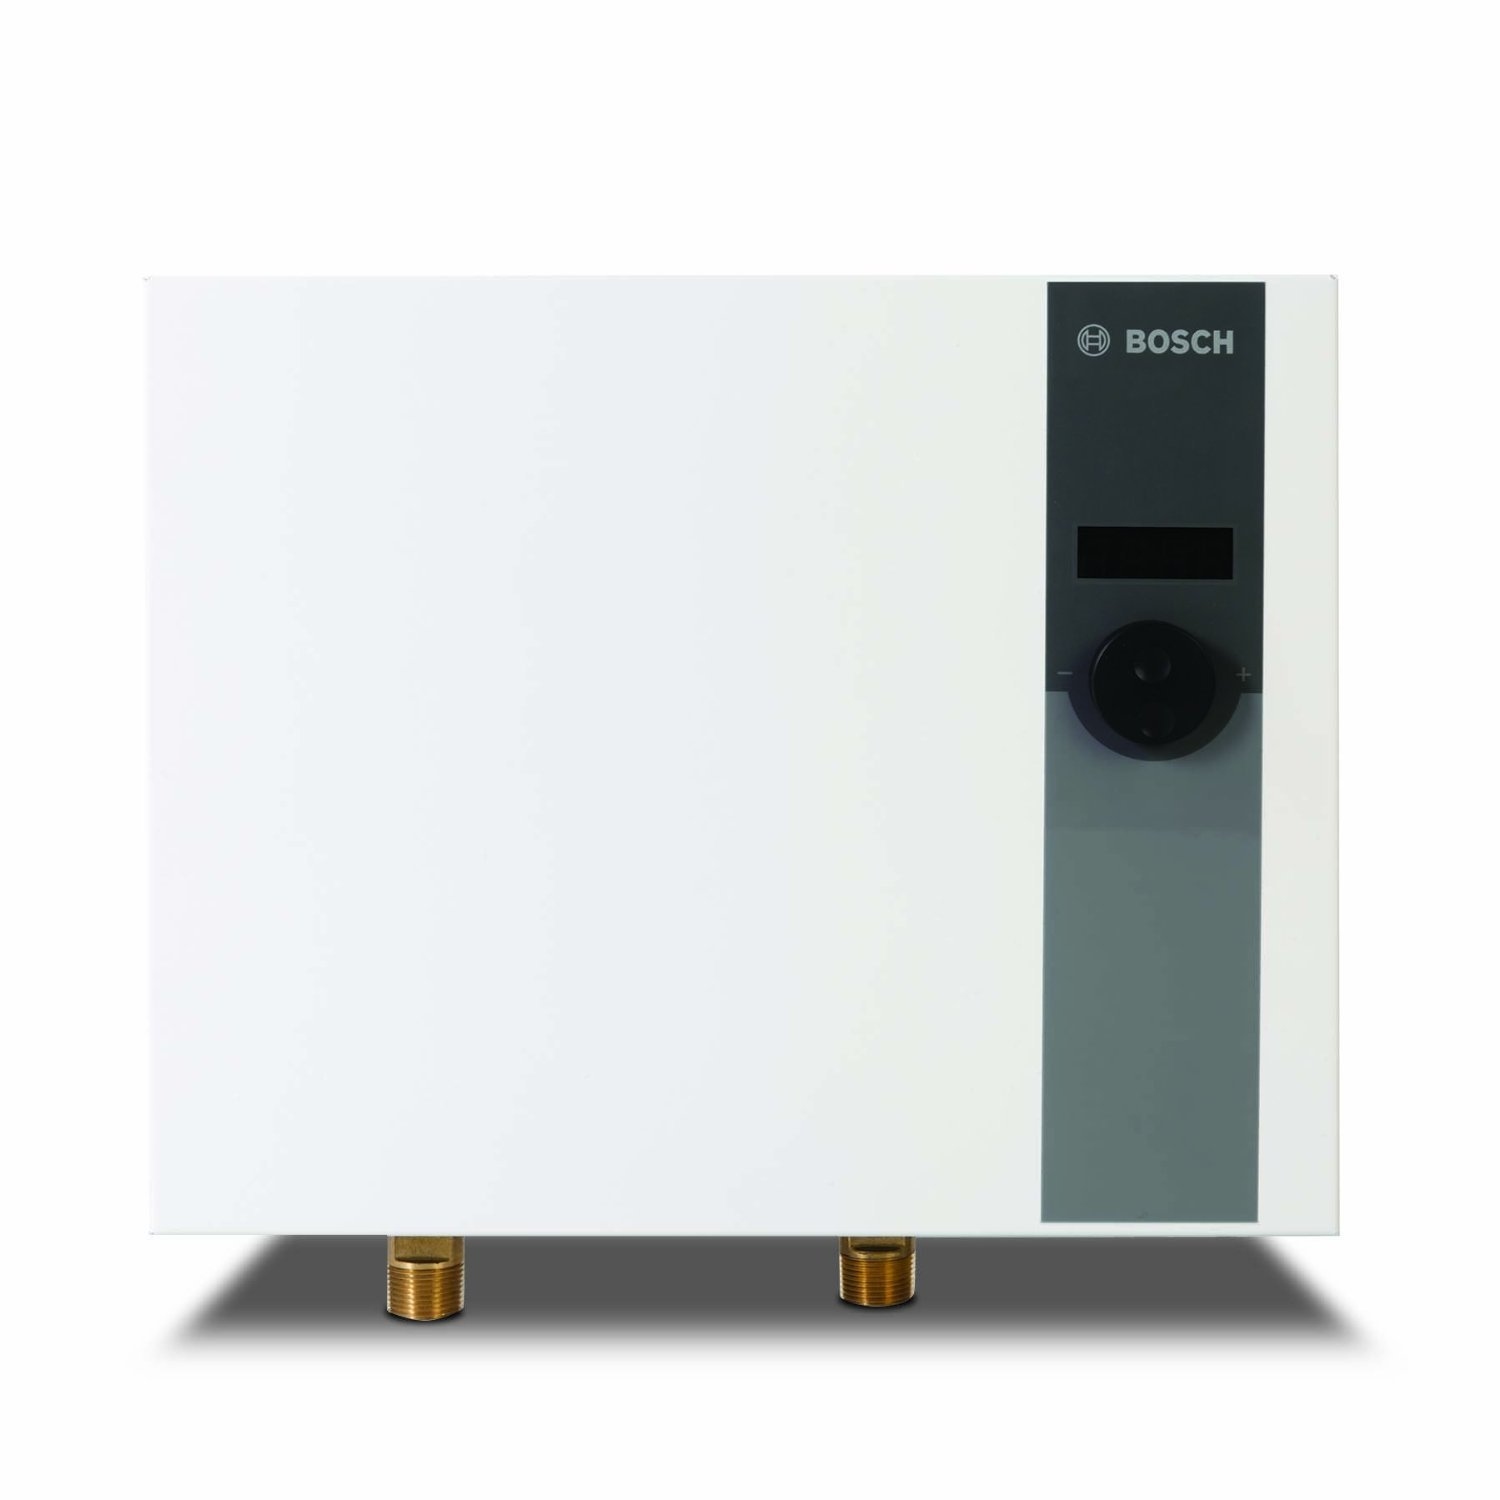 Bosch Tronic 6000 C Electric Tankless Whole House Water